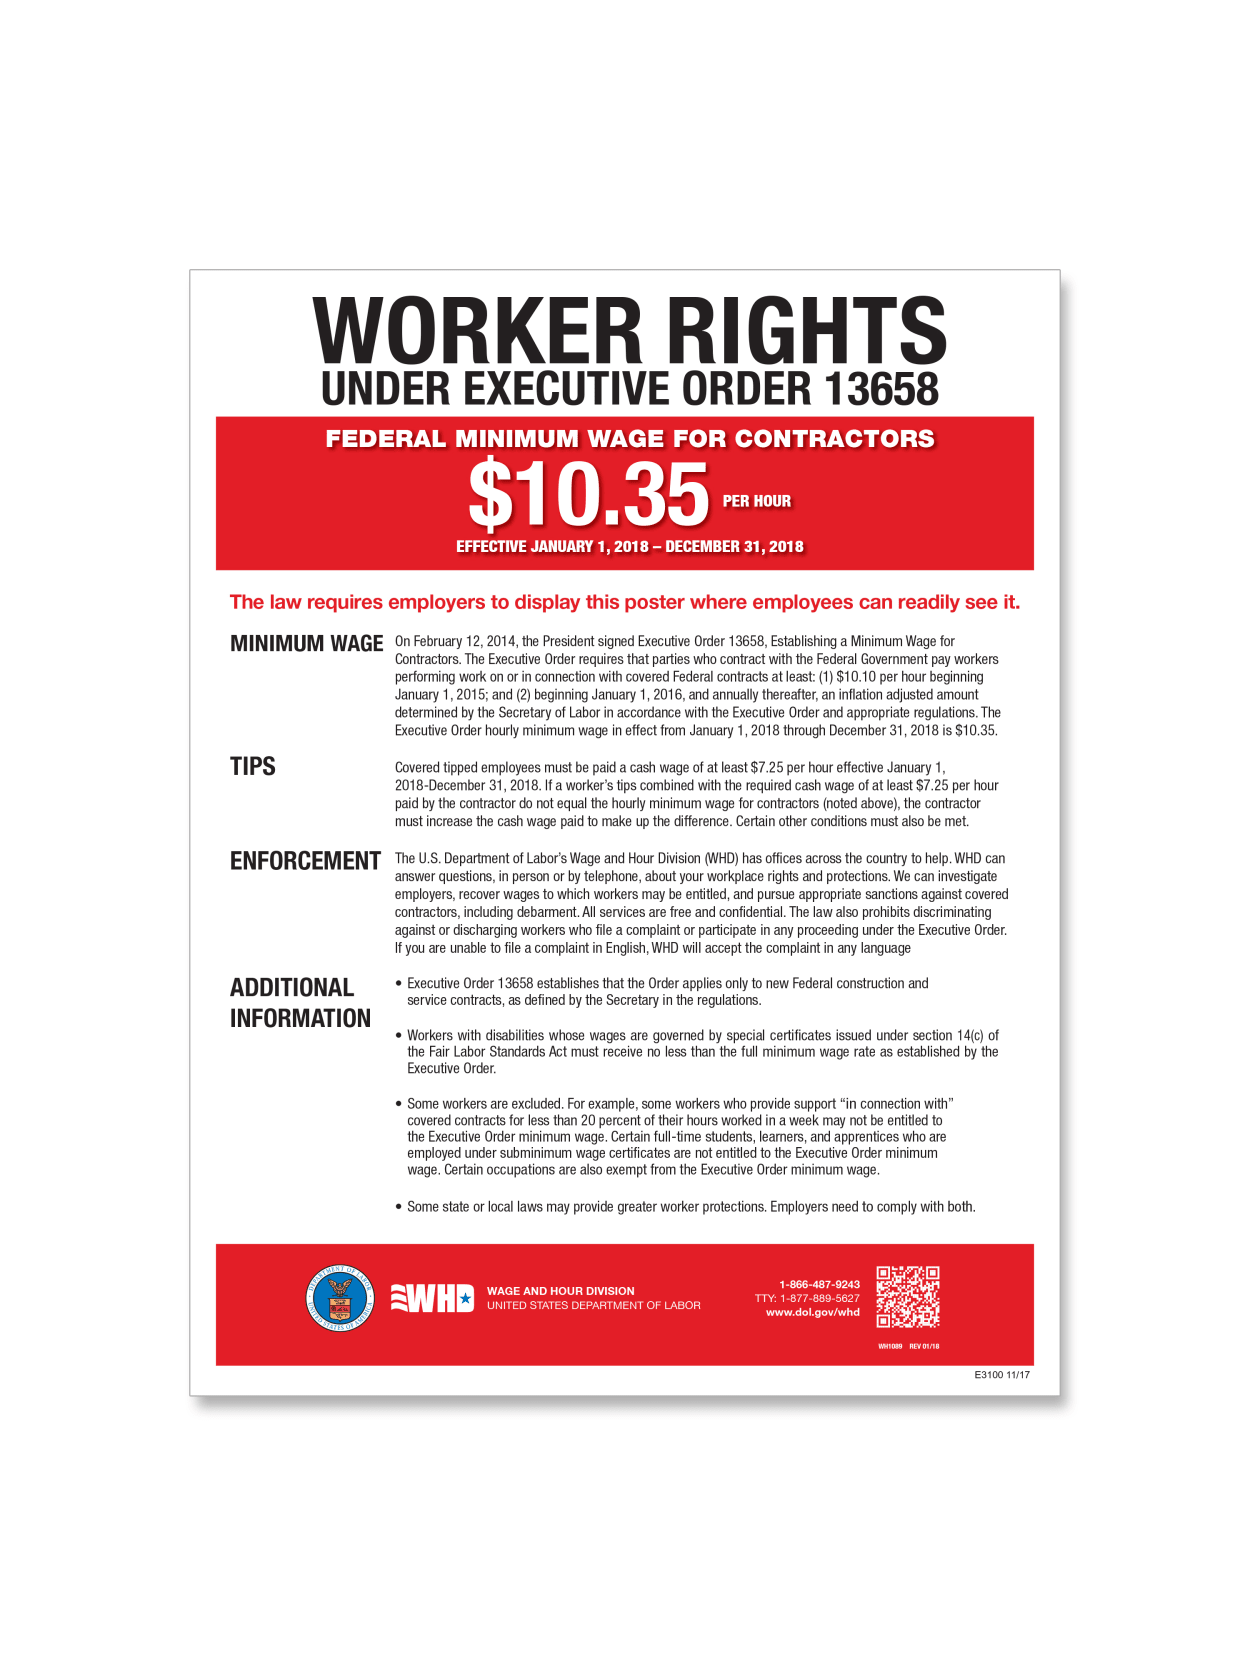 complyright federal contractor minimum wage poster english 11 x 17 item 969629